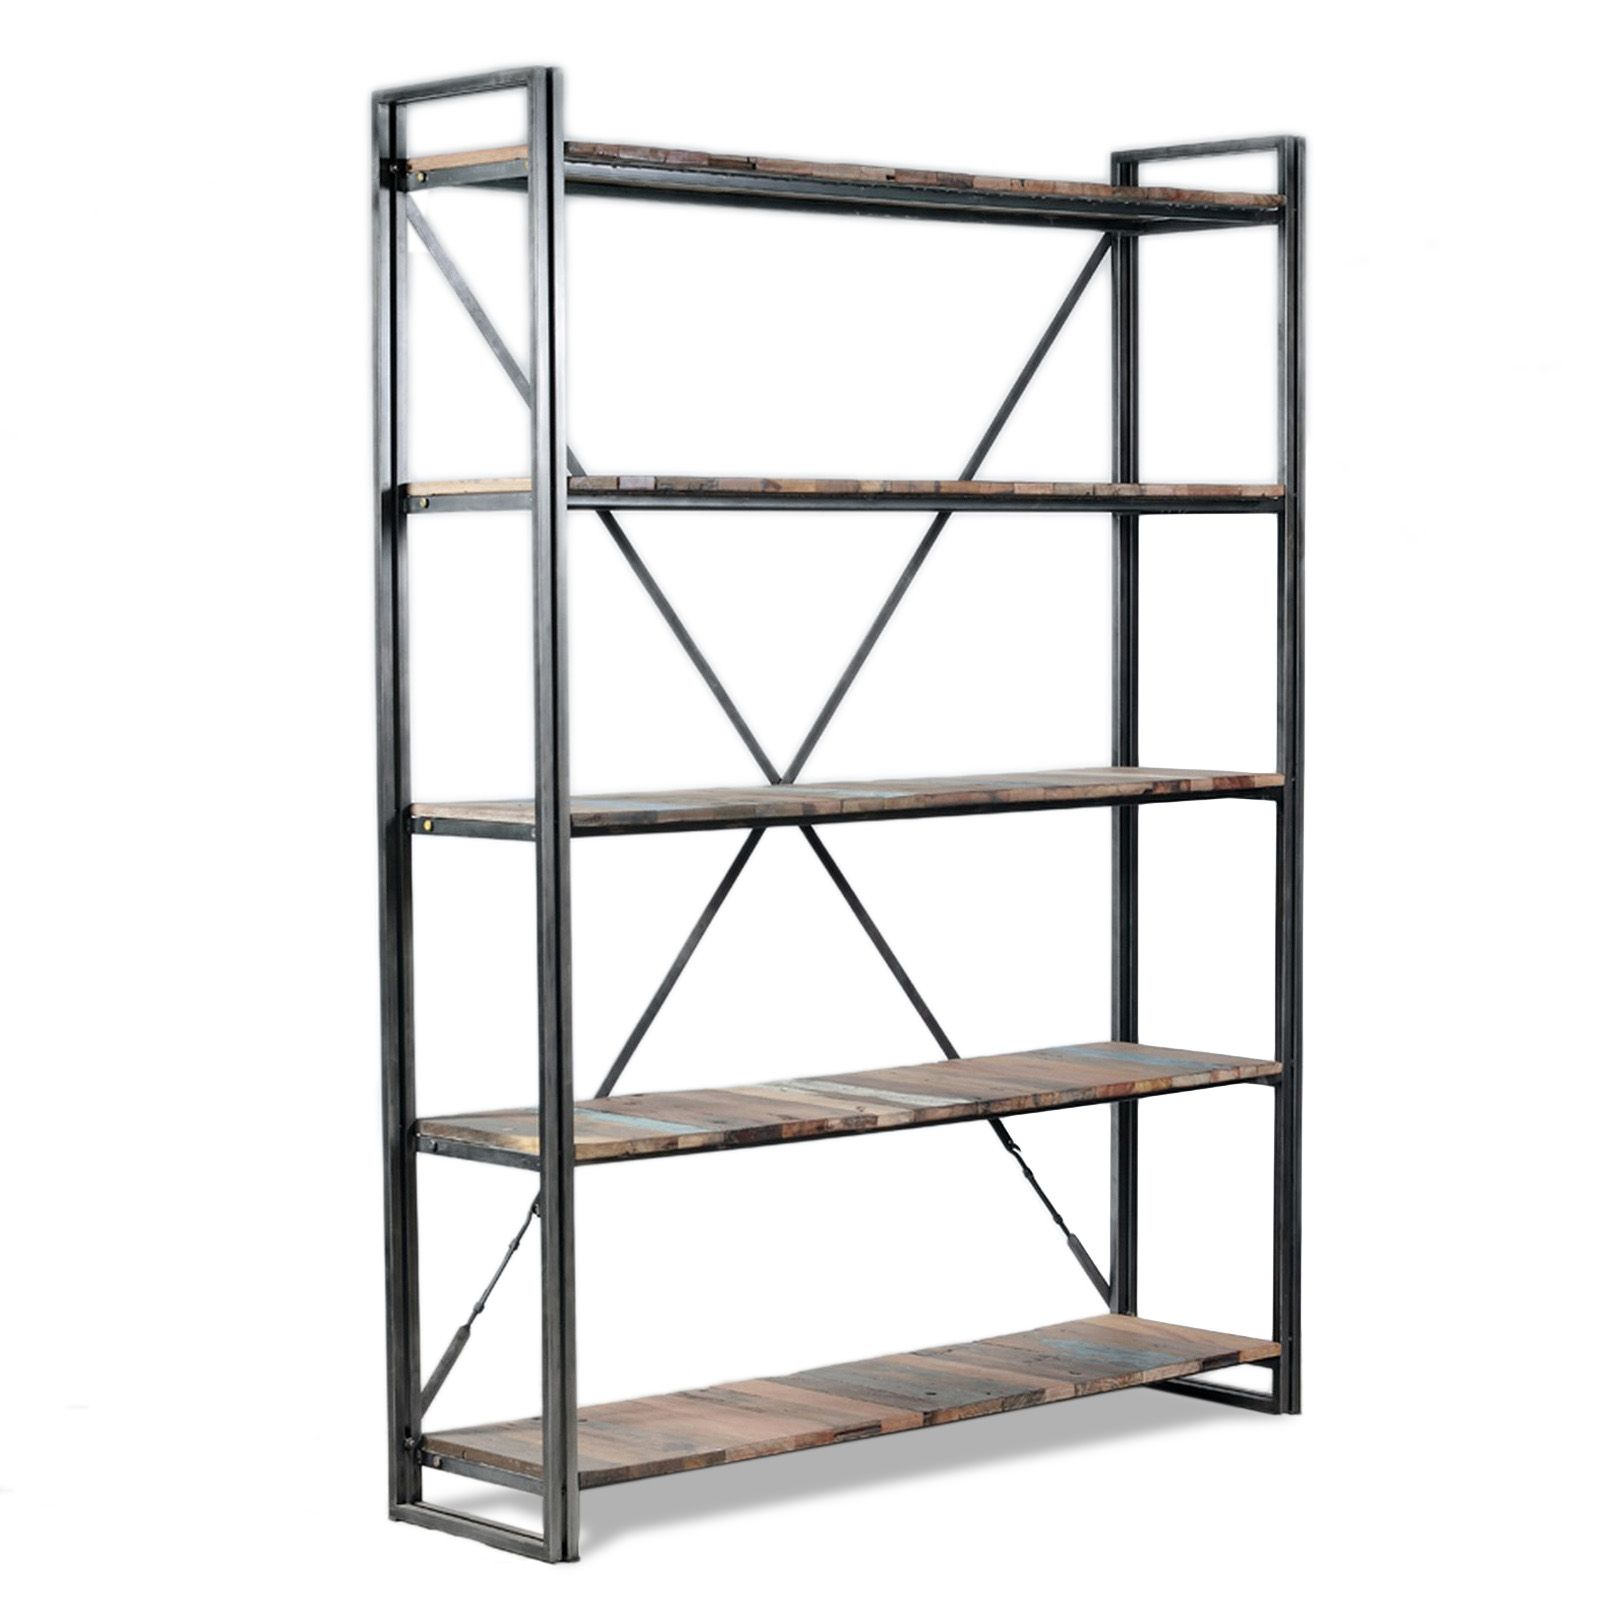 Meubles Industriels Biblioth Que 4 Tag Res Style Factory  # Meuble Palette Style Industriel